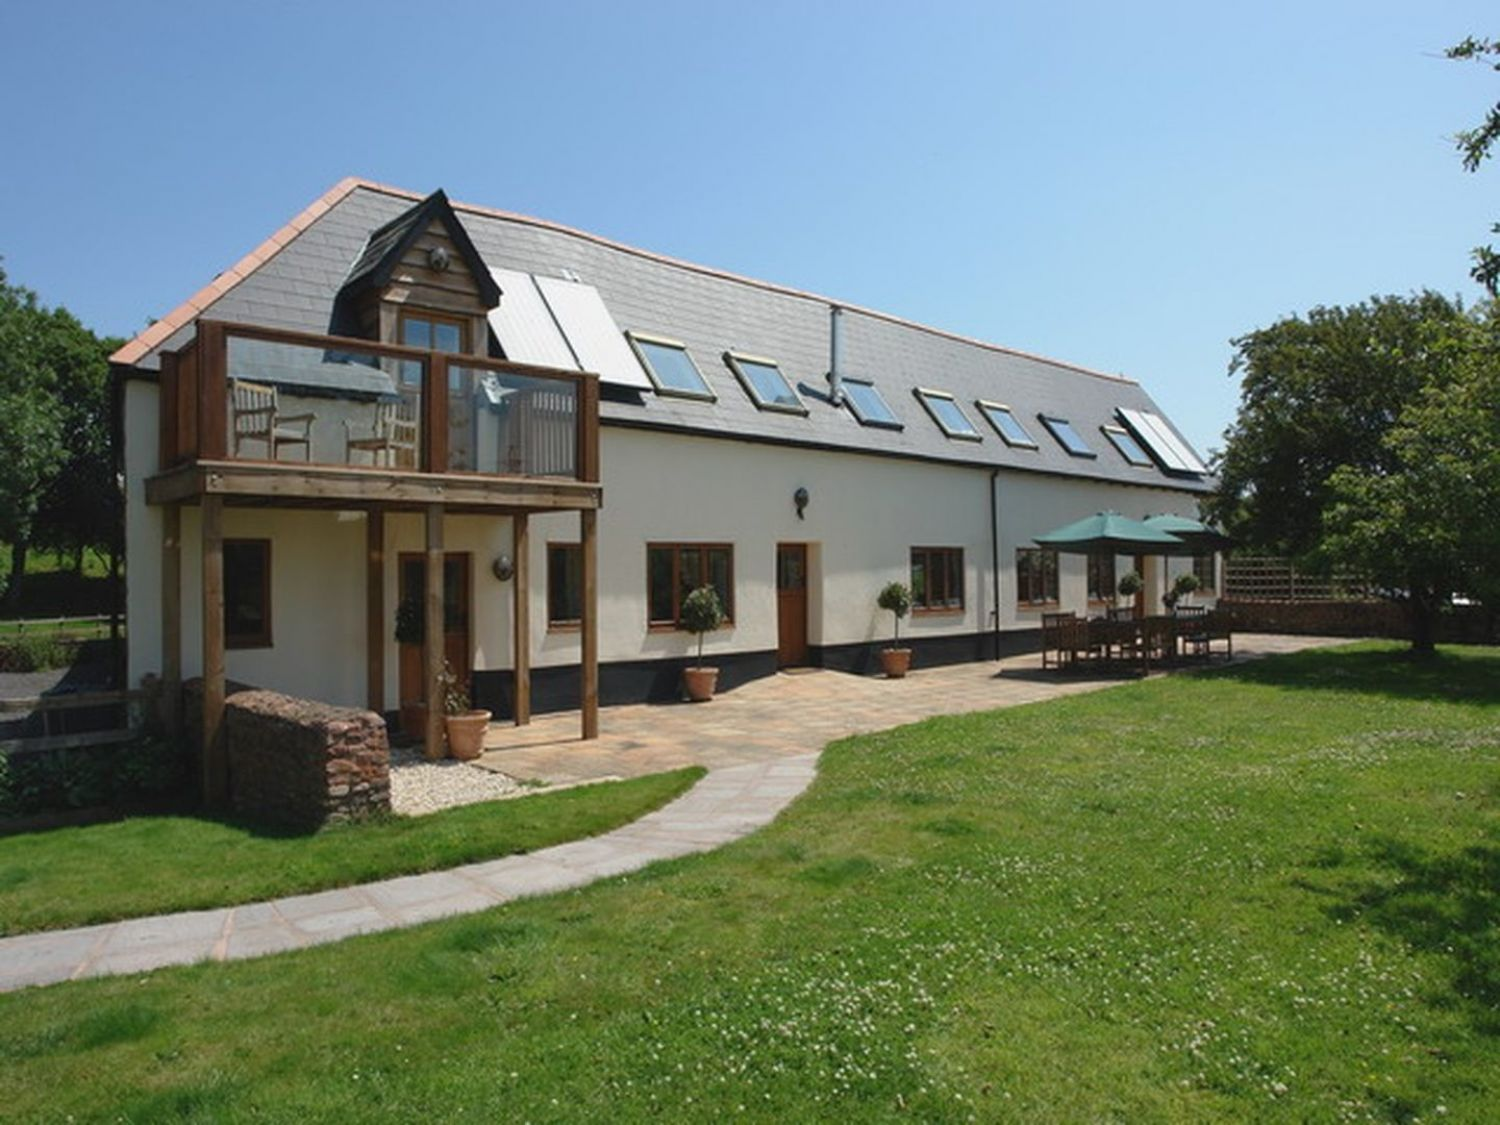 Hayloft barn conversion at maddocks farm